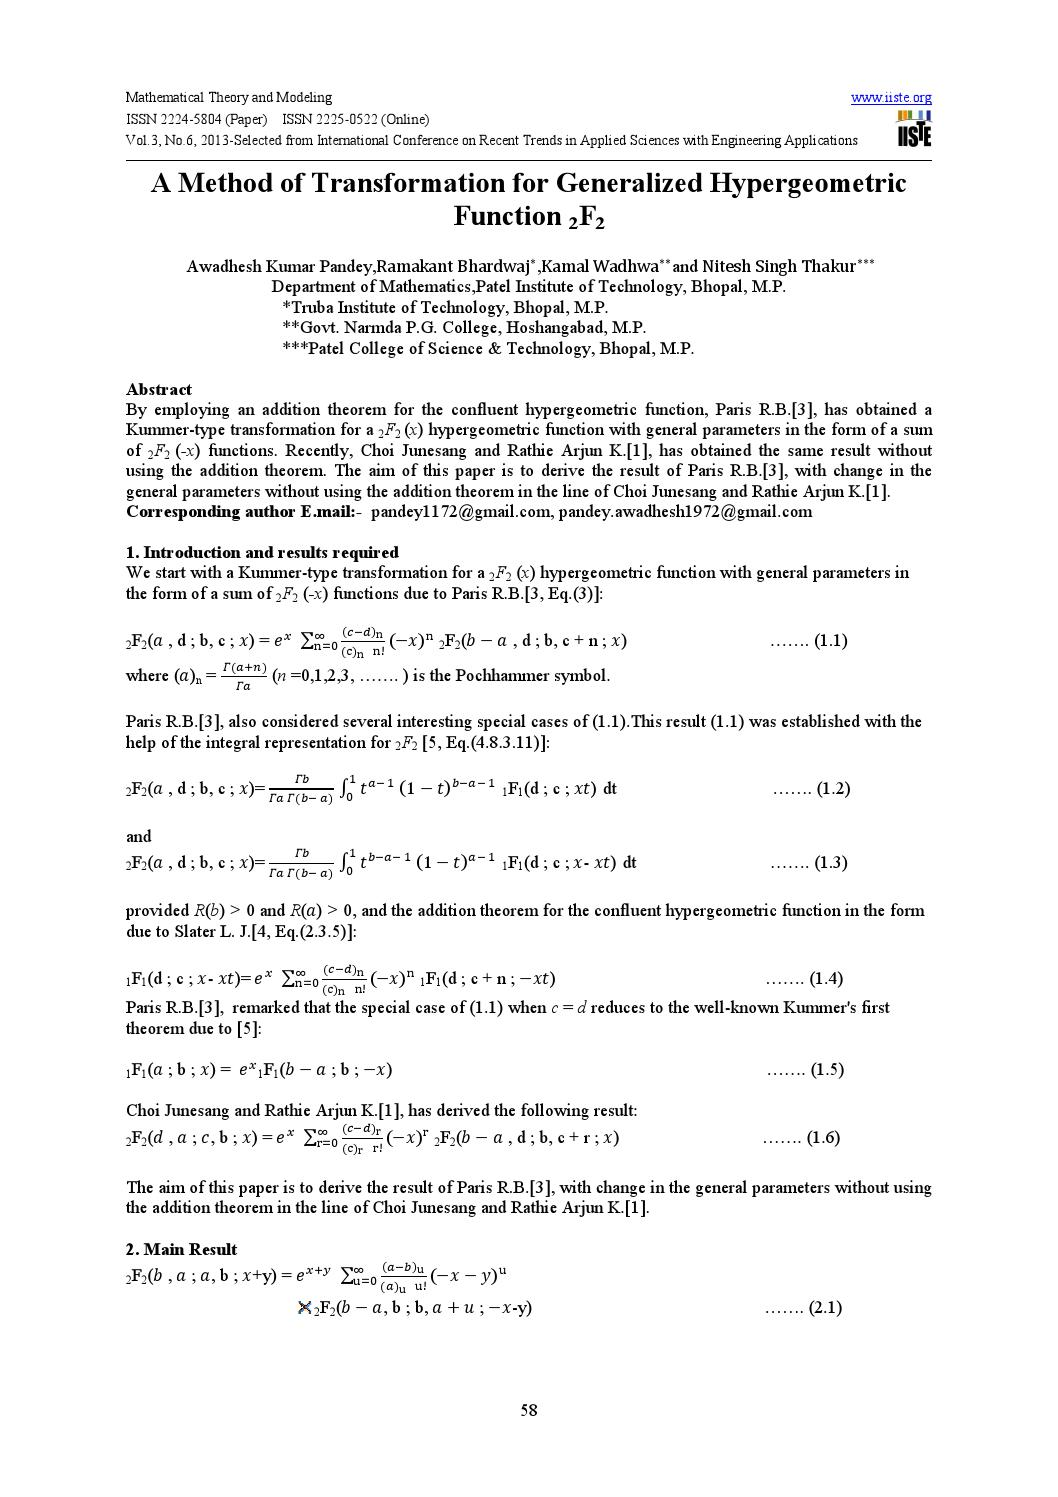 essays on the theory of elliptic hypergeometric functions Please select one of the following sources for this article: iop publishing: iop publishing hosts the online versions of all turpion journals, providing full text access for current subscribers and pay-per-view access for non-subscribers.